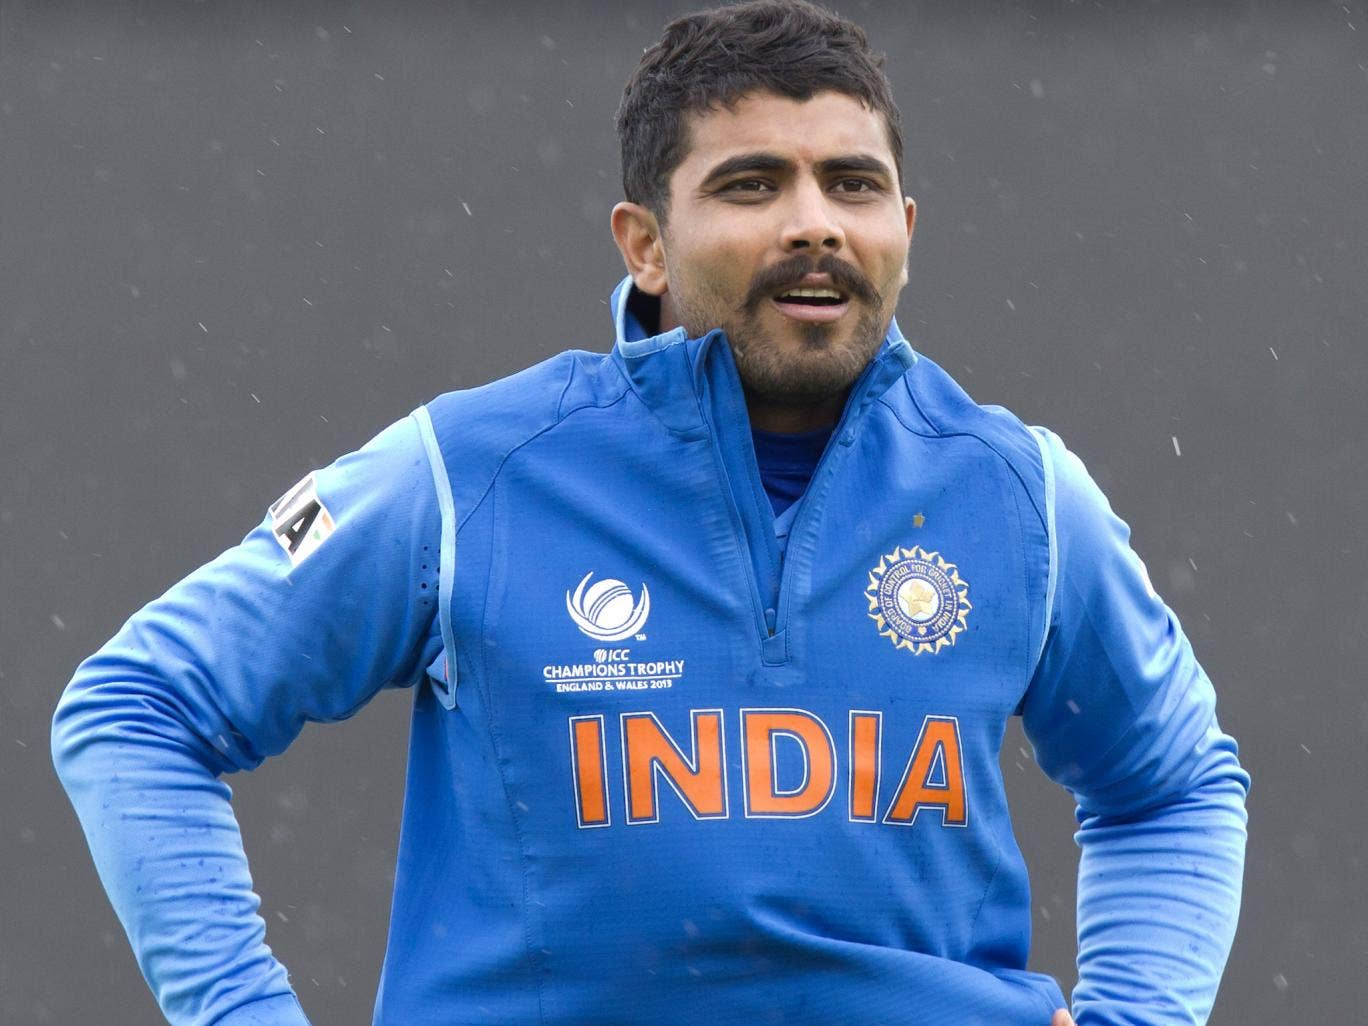 Ravi Jadeja has been magnificent with the bat, the ball and in the field